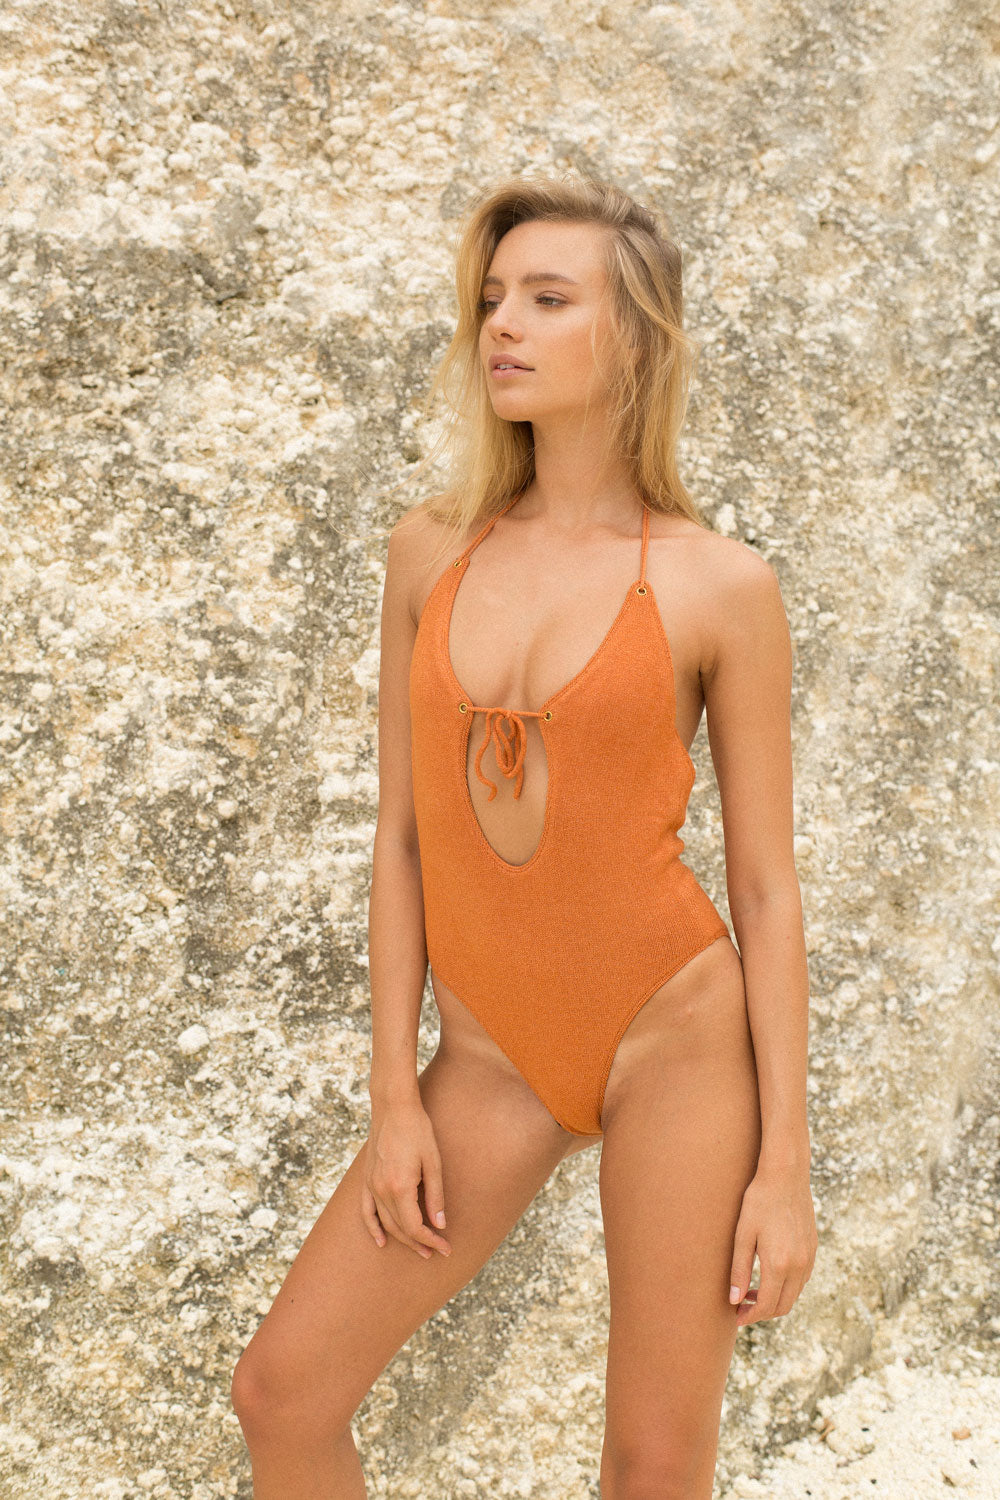 SOLAR V2 ONE PIECE - SUN ORANGE